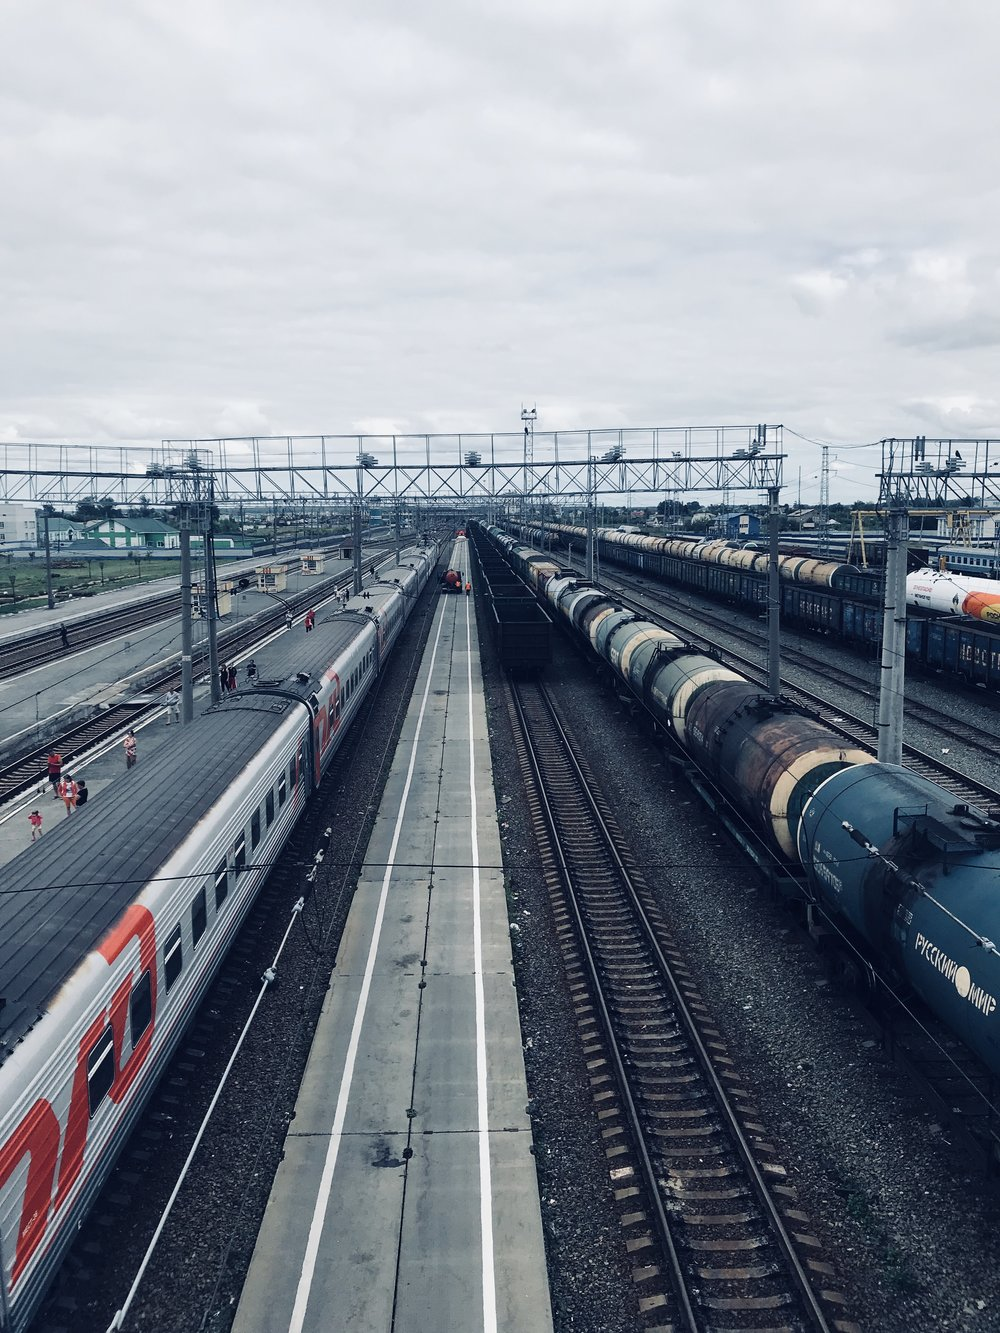 The Trans-Siberian train (left) and the endless freight (right).